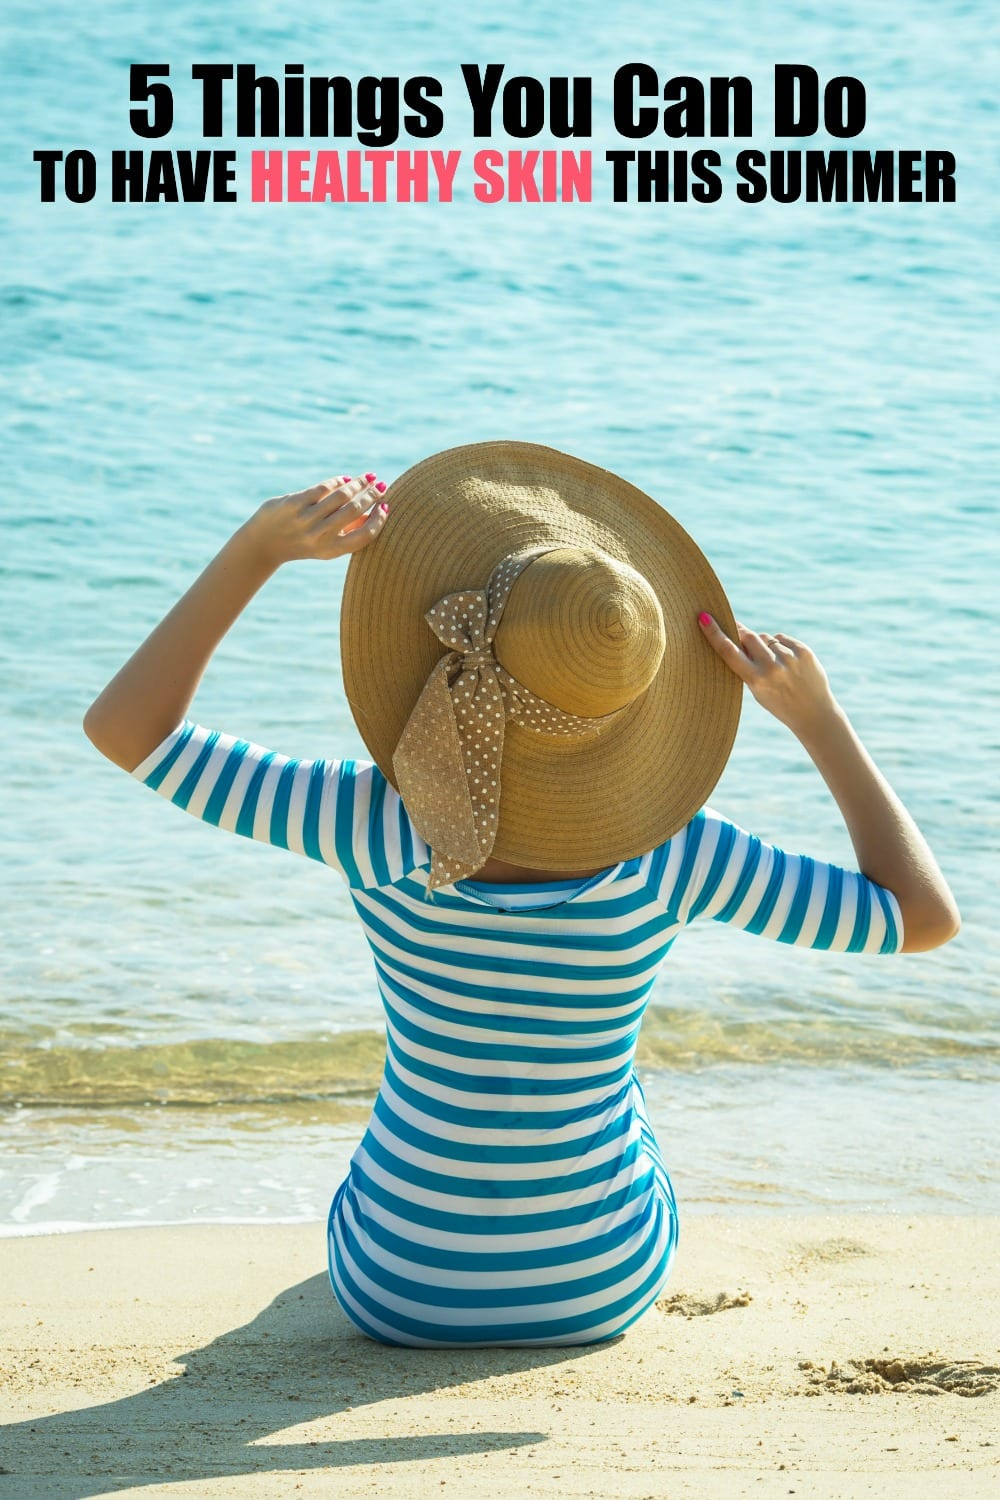 These five summer skin care tips can help protect your skin, helping it look and feel its best - even when the summer sun beckons.